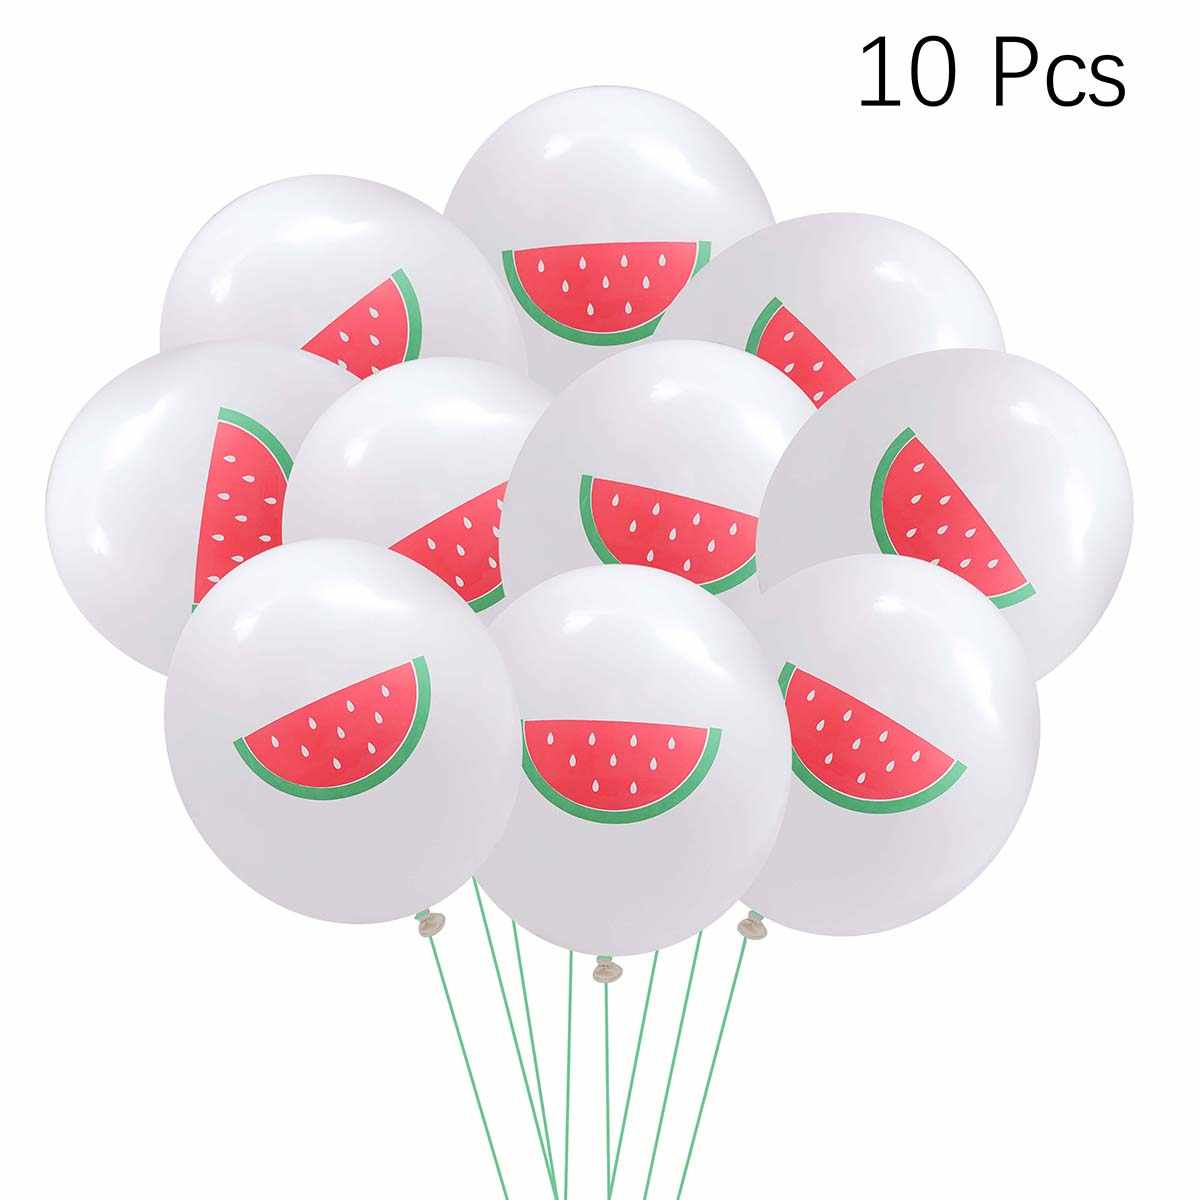 10PCS Palloncini Estate Calda Luau Partito Forniture Anguria Frutta Rotonda Lattice Wedding Party di Compleanno Palloncino Palloncino Decorare